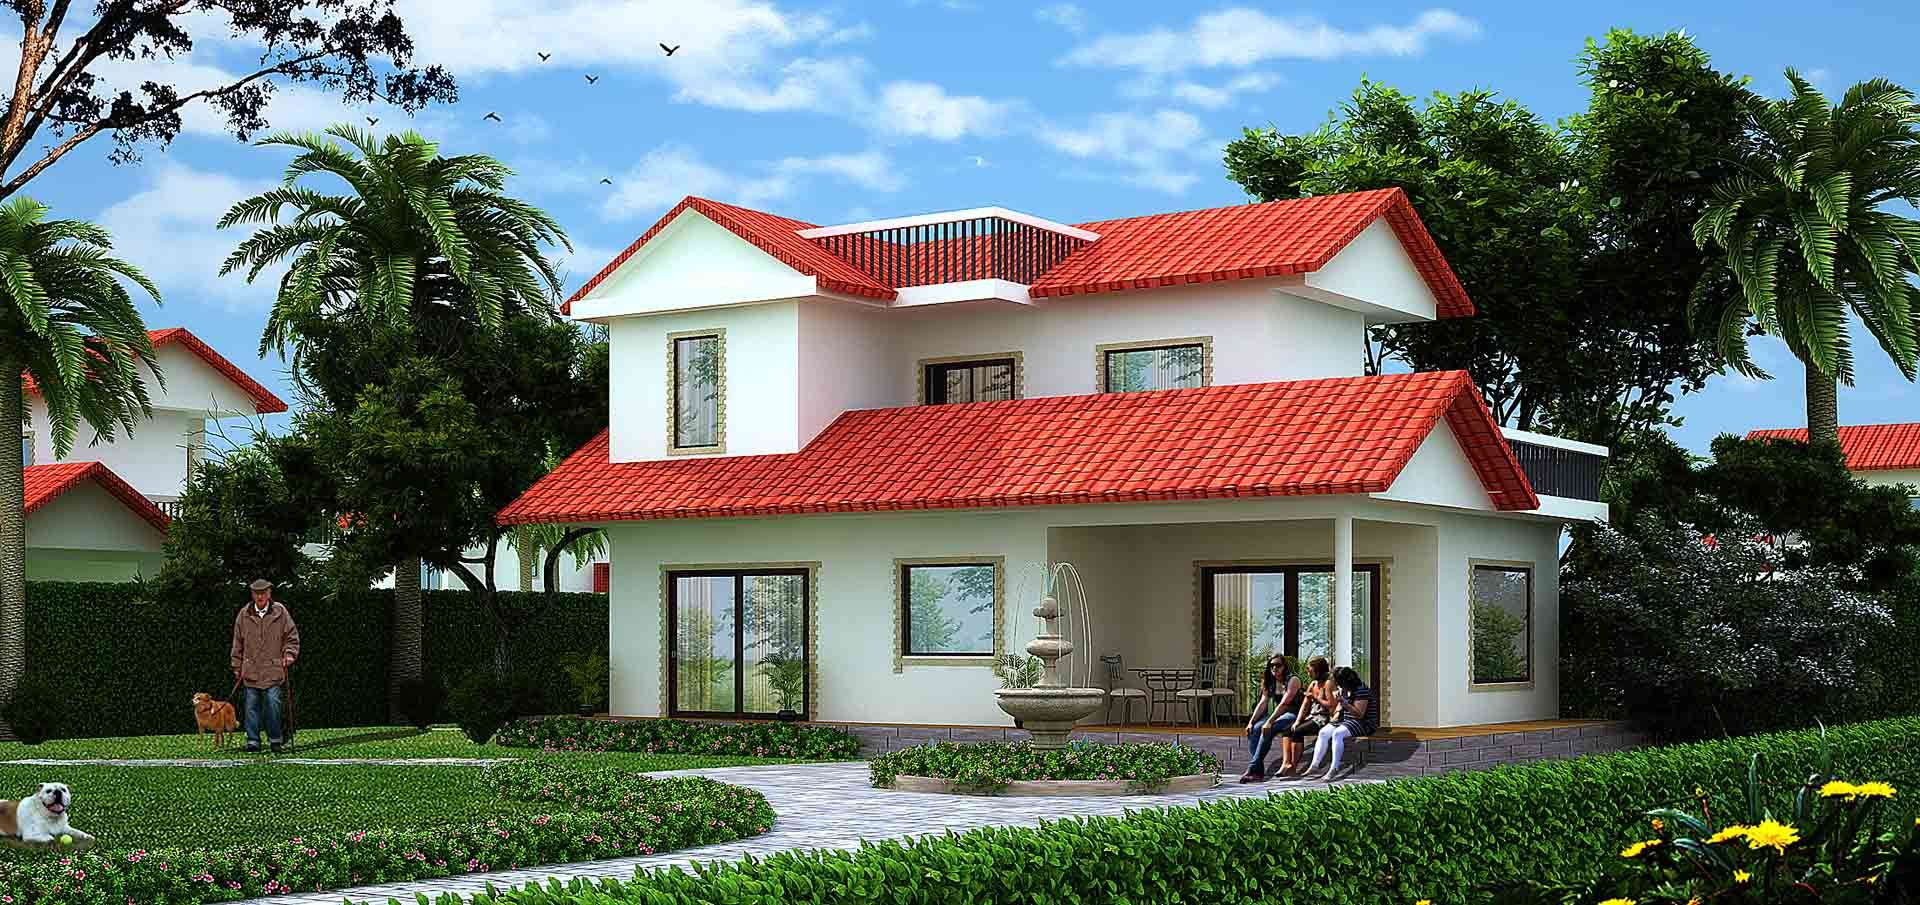 New Luxury Farm house in Gurgaon for Sale. Residential